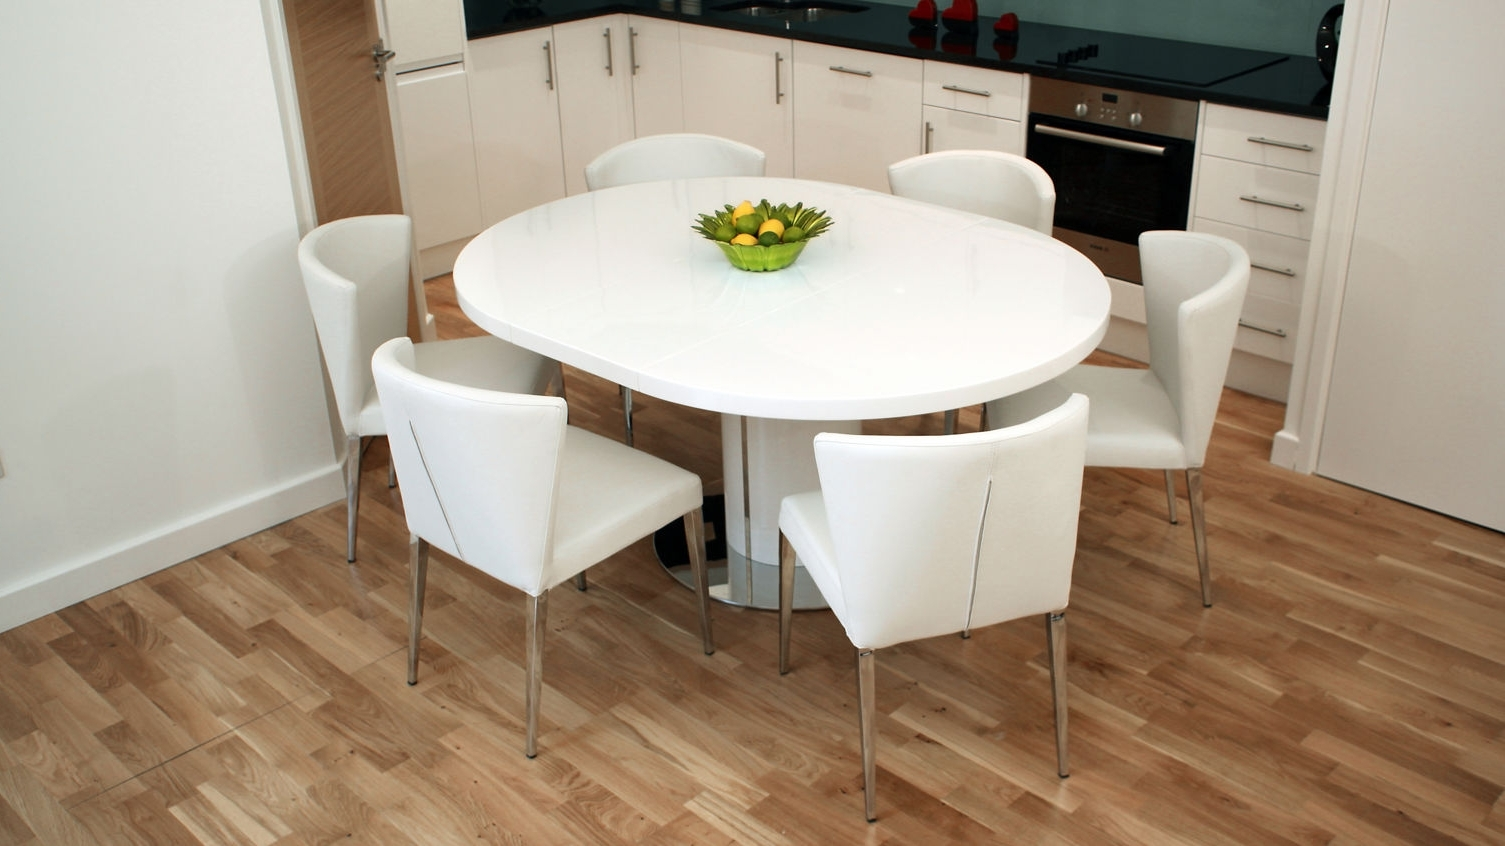 Current Kitchen Table Design  White Chairs And Round Dining Table  White For Shiny White Dining Tables (View 5 of 25)